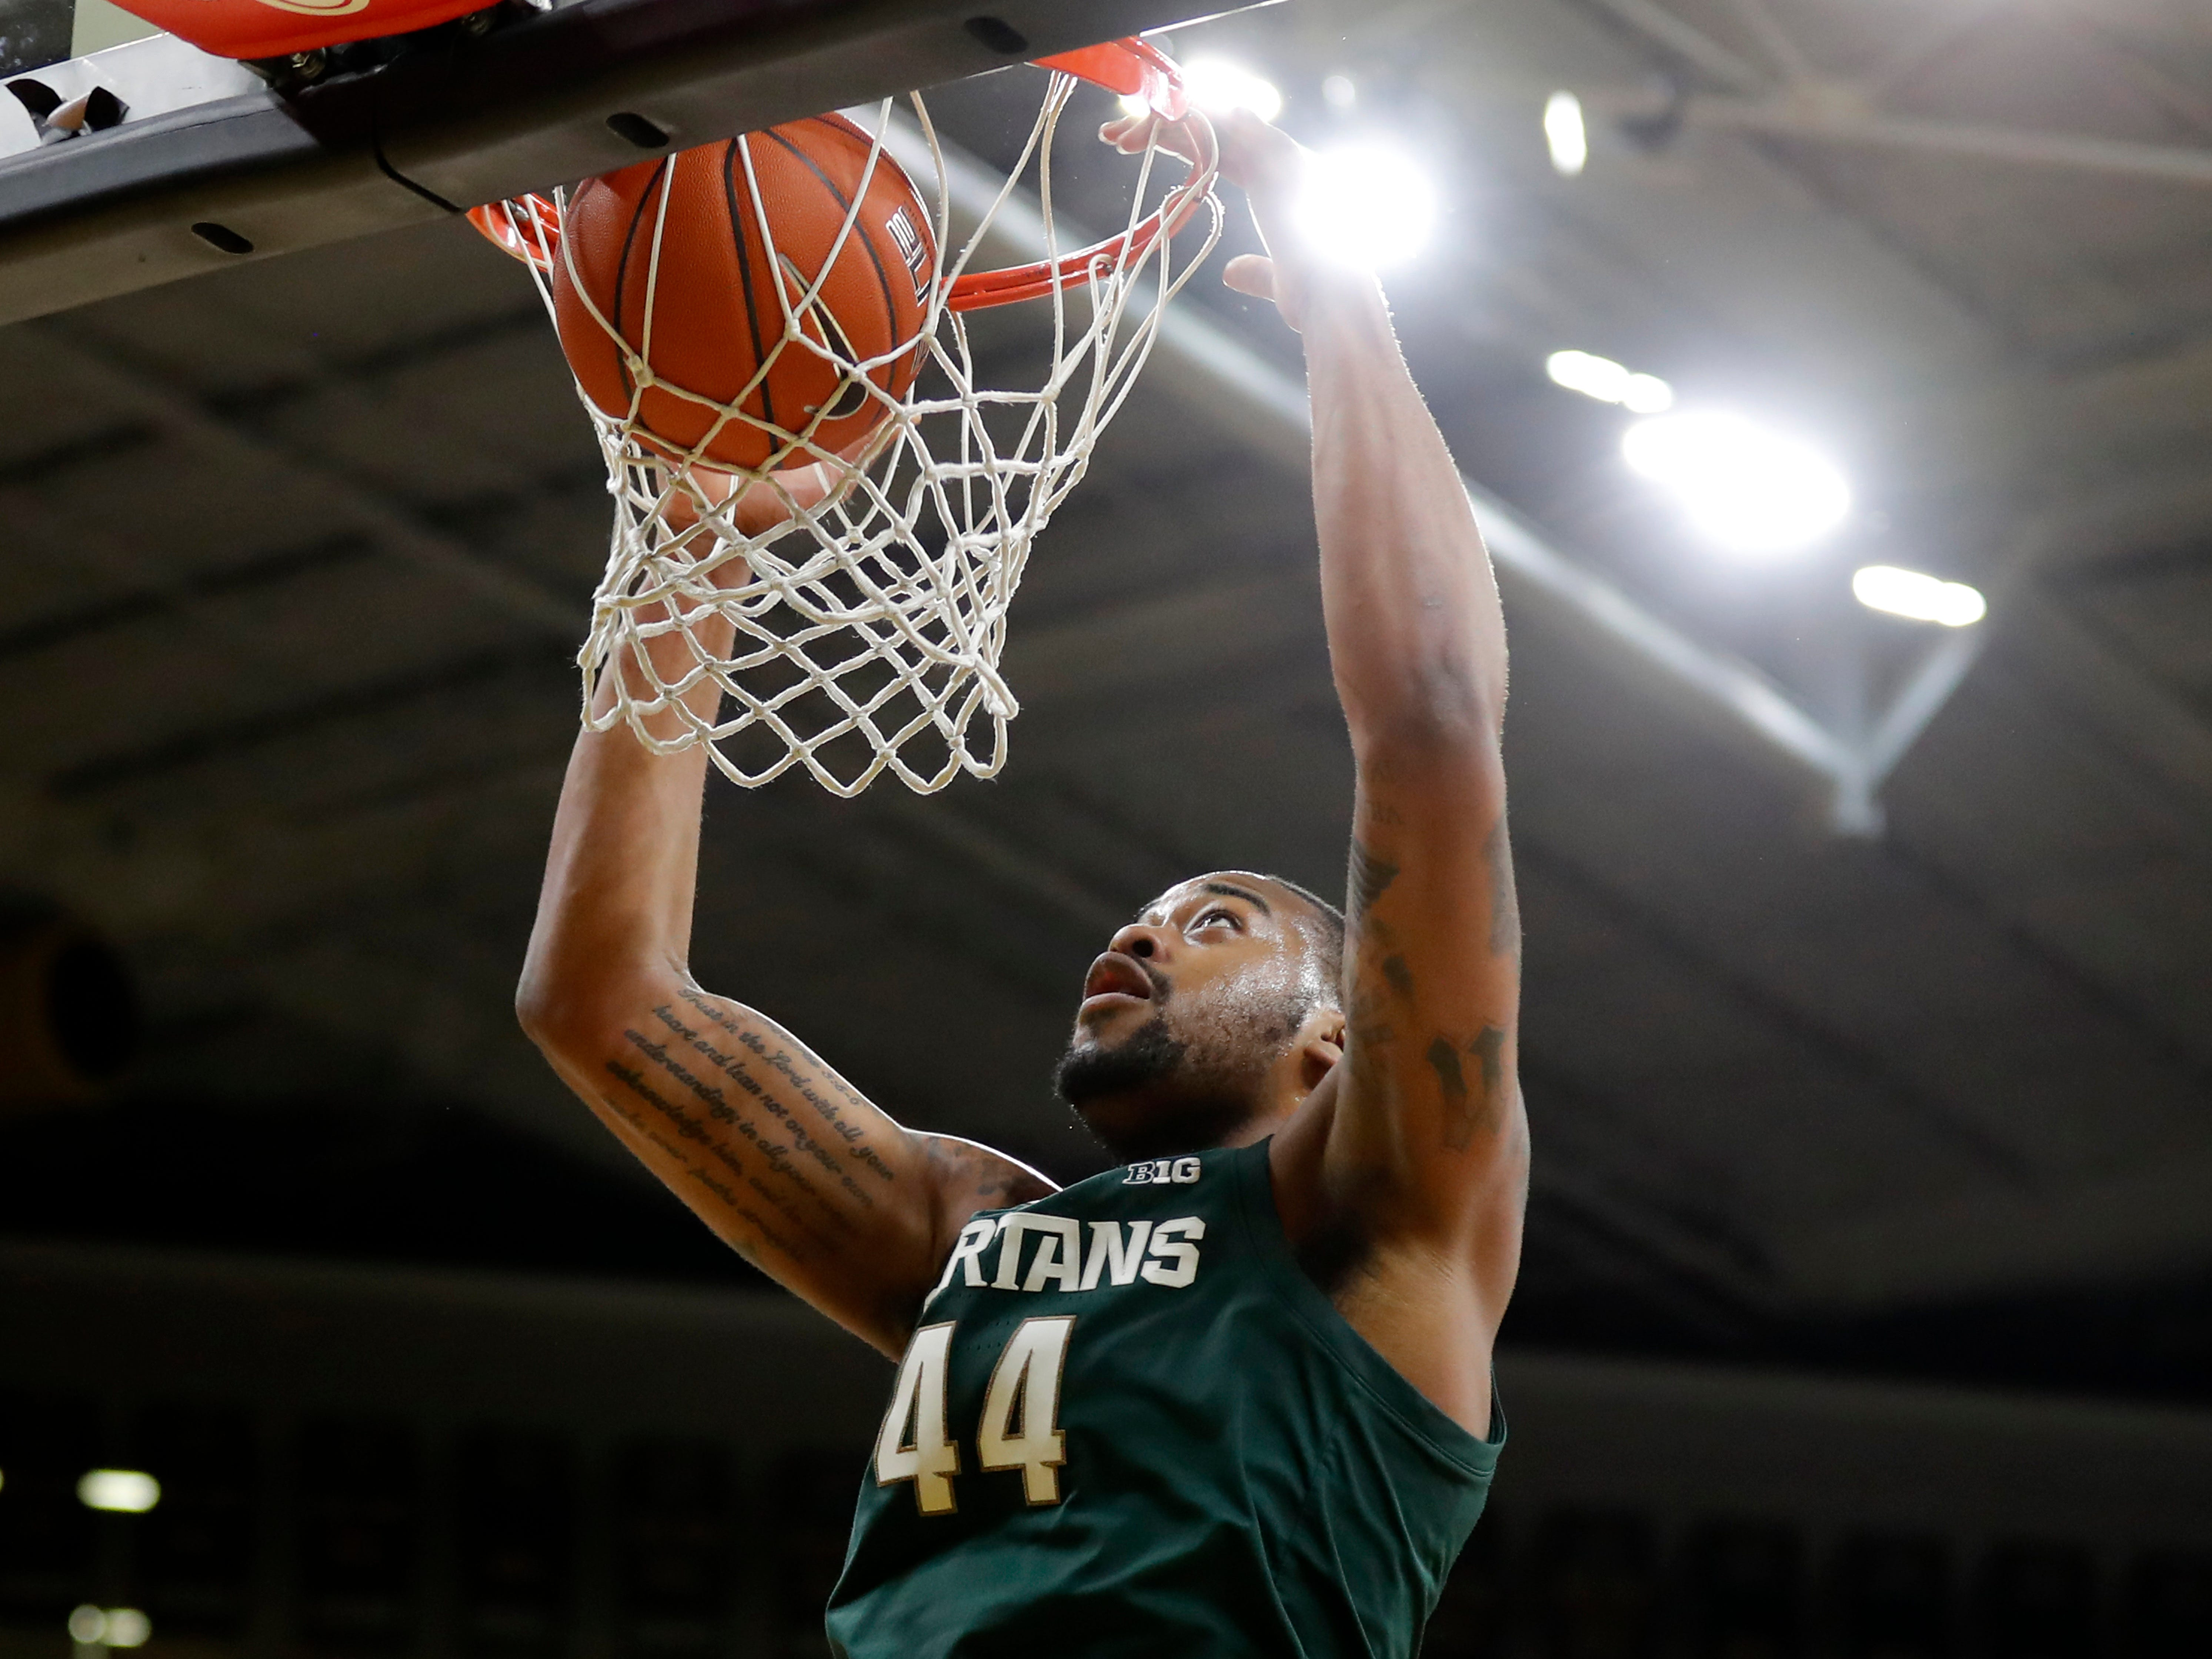 Michigan State forward Nick Ward dunks during the first half of the team's NCAA college basketball game against Iowa, Thursday, Jan. 24, 2019, in Iowa City, Iowa. Michigan State won 82-67.